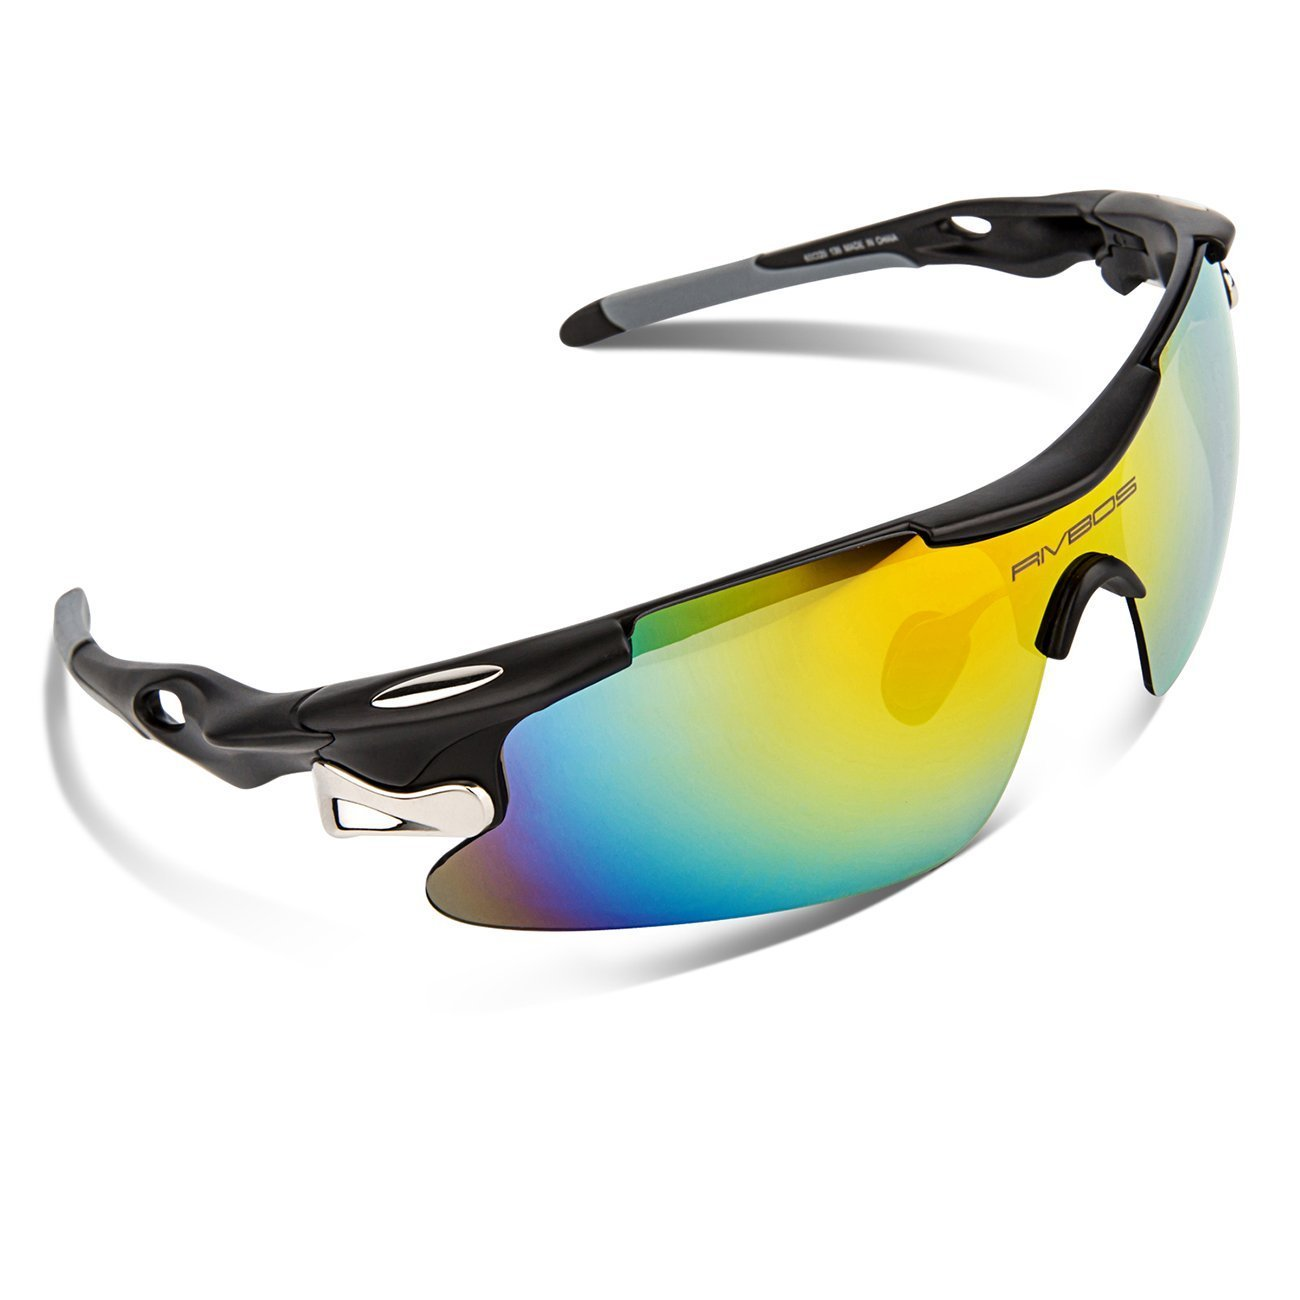 b6448eea21 Get Quotations · RIVBOS 802 Polarized Sports Sunglasses with 5 Set  Interchangeable Lenses for Cycling